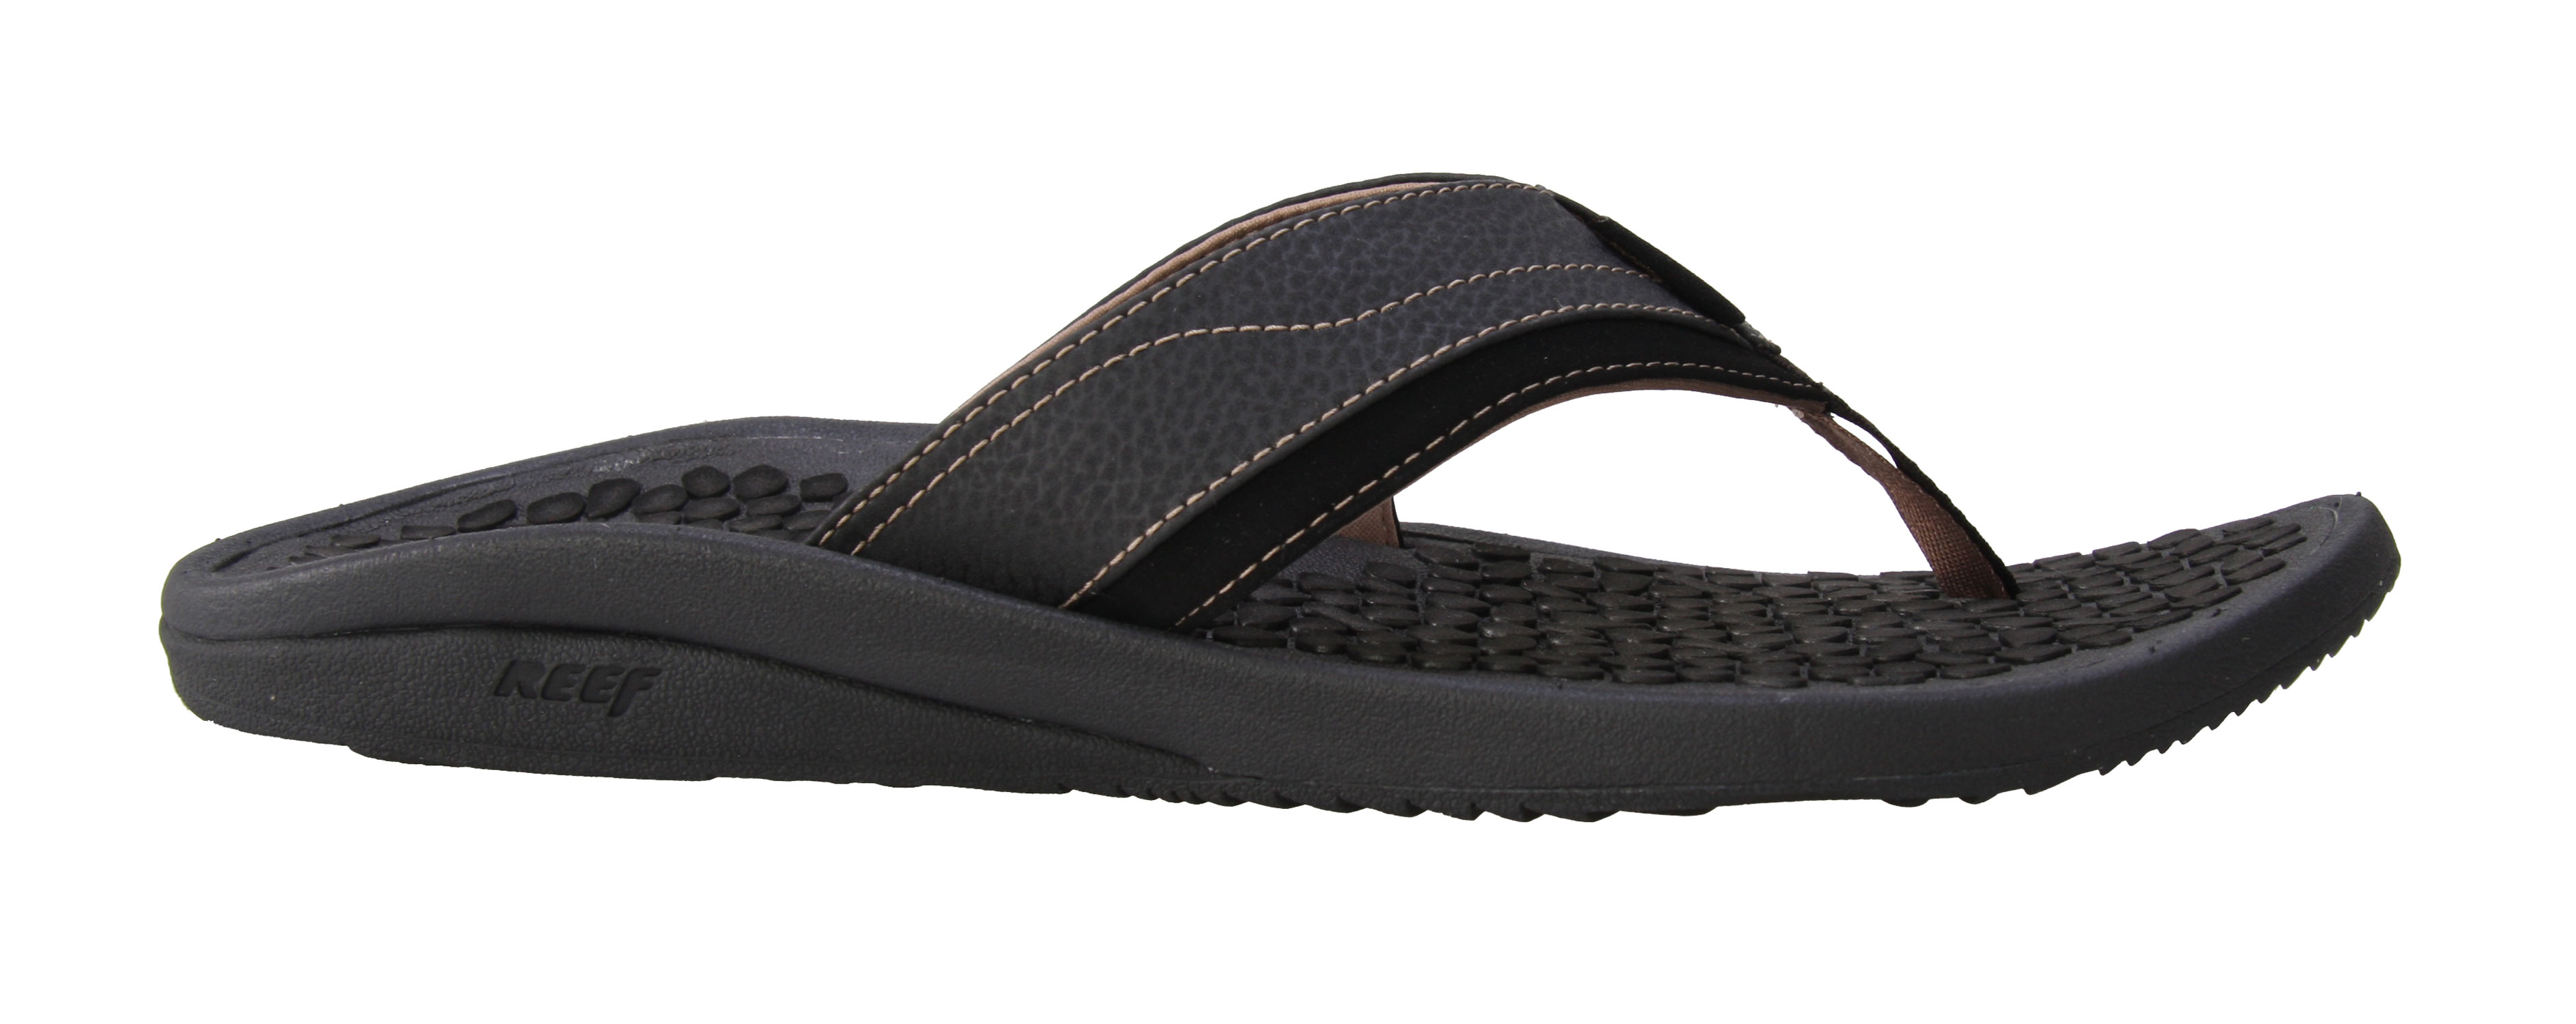 Surf The Reef Playa Negra sandals are ready for the summer. The 25% recycled rubber outsole performs on a variety of surfaces, while staying environmentally friendly. The heavy texture footbed means a grippy fit for maximum comfort, and the textile lined strap fits securely to your foot. The contoured EVA midsole lets you rock your reefs all day. Get Reef style, quality, and comfort with the Playa Negra sandals, and free your feet from sneaker oppression.Key Features of The Reef Playa Negra Sandals: Water Based / Water Friendly Synthetic Leather Upper with Asymmetrical Comfort Super Soft Textile Lining Heavy Texture Thermo Sliced Footbed Deep Contoured Compression Molded EVA Midsole Reef Olas Design Outsole Made of 25% Recycled Rubber - $33.95